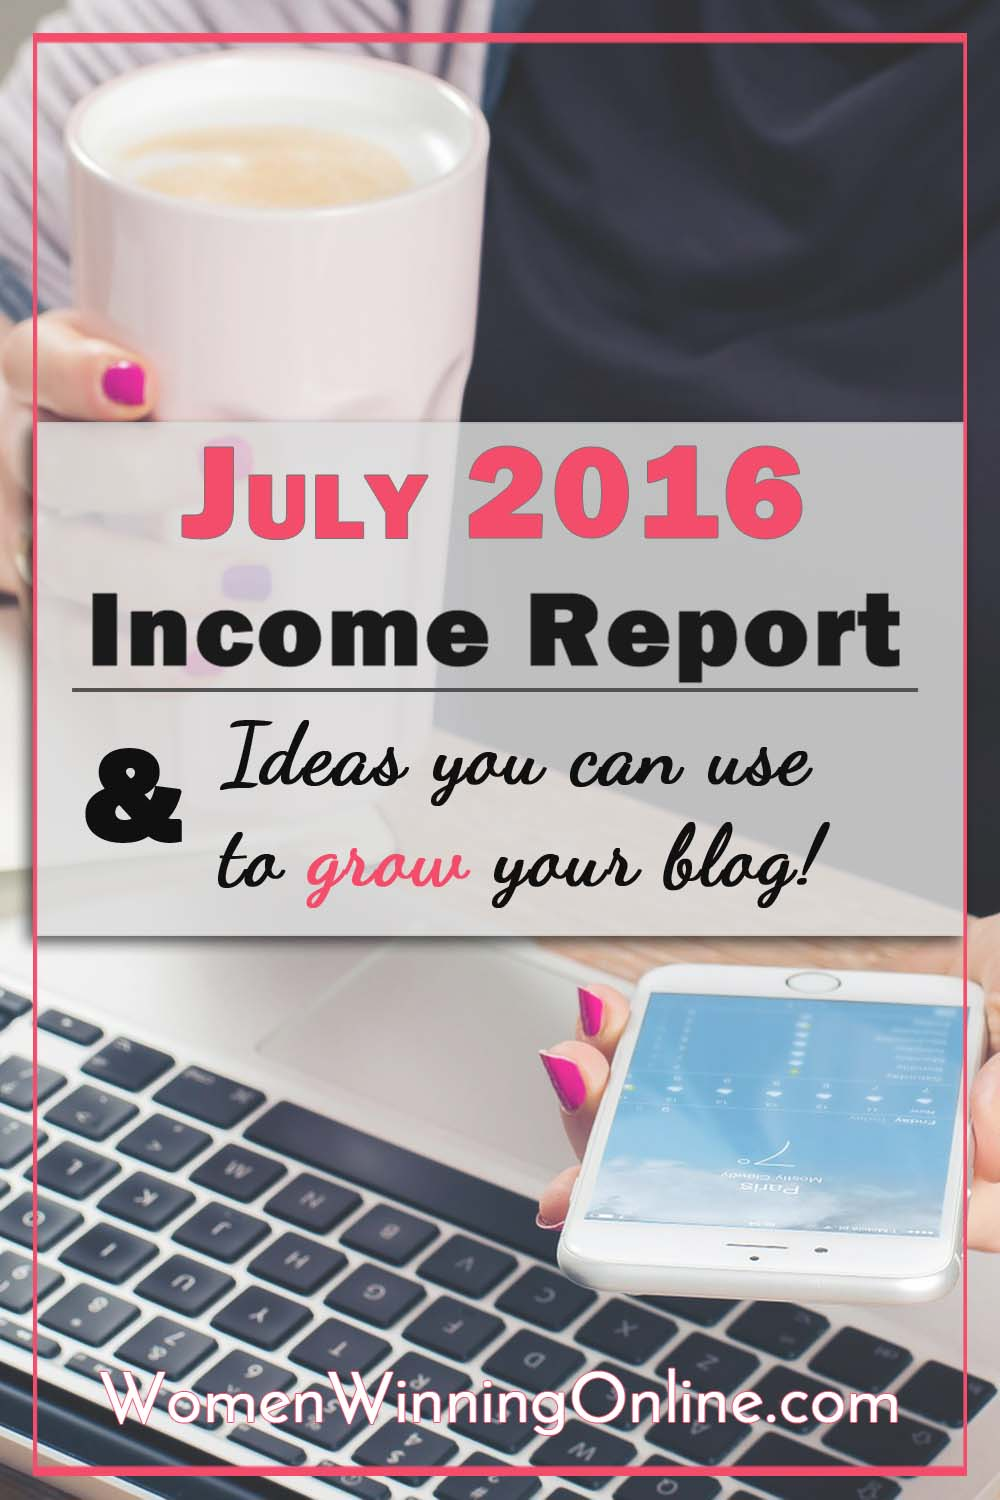 July 2016 Blog and Income Report, Income Report, blog income report